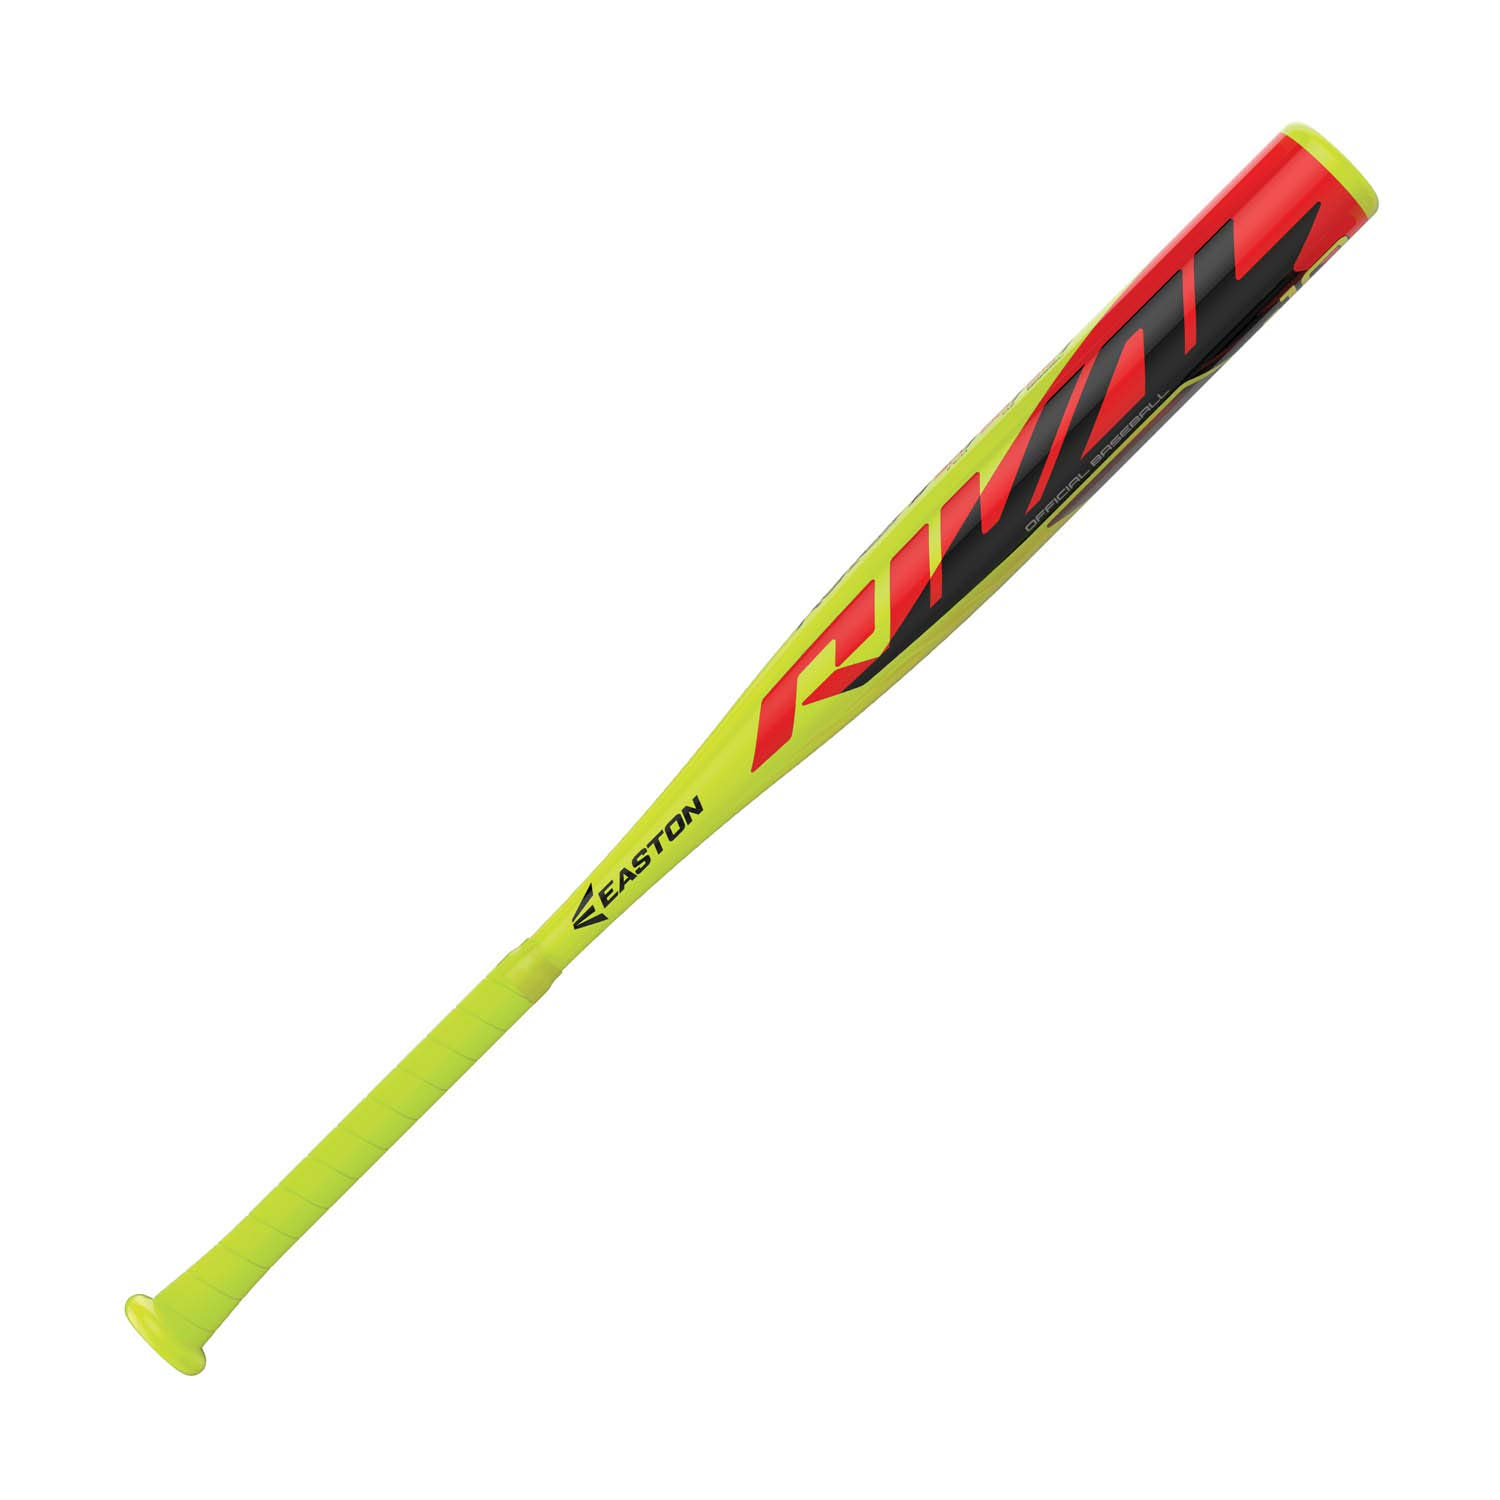 *YSB19RIV10 32/22 RIVAL 2 1/4 -10 by Easton (Image #1)